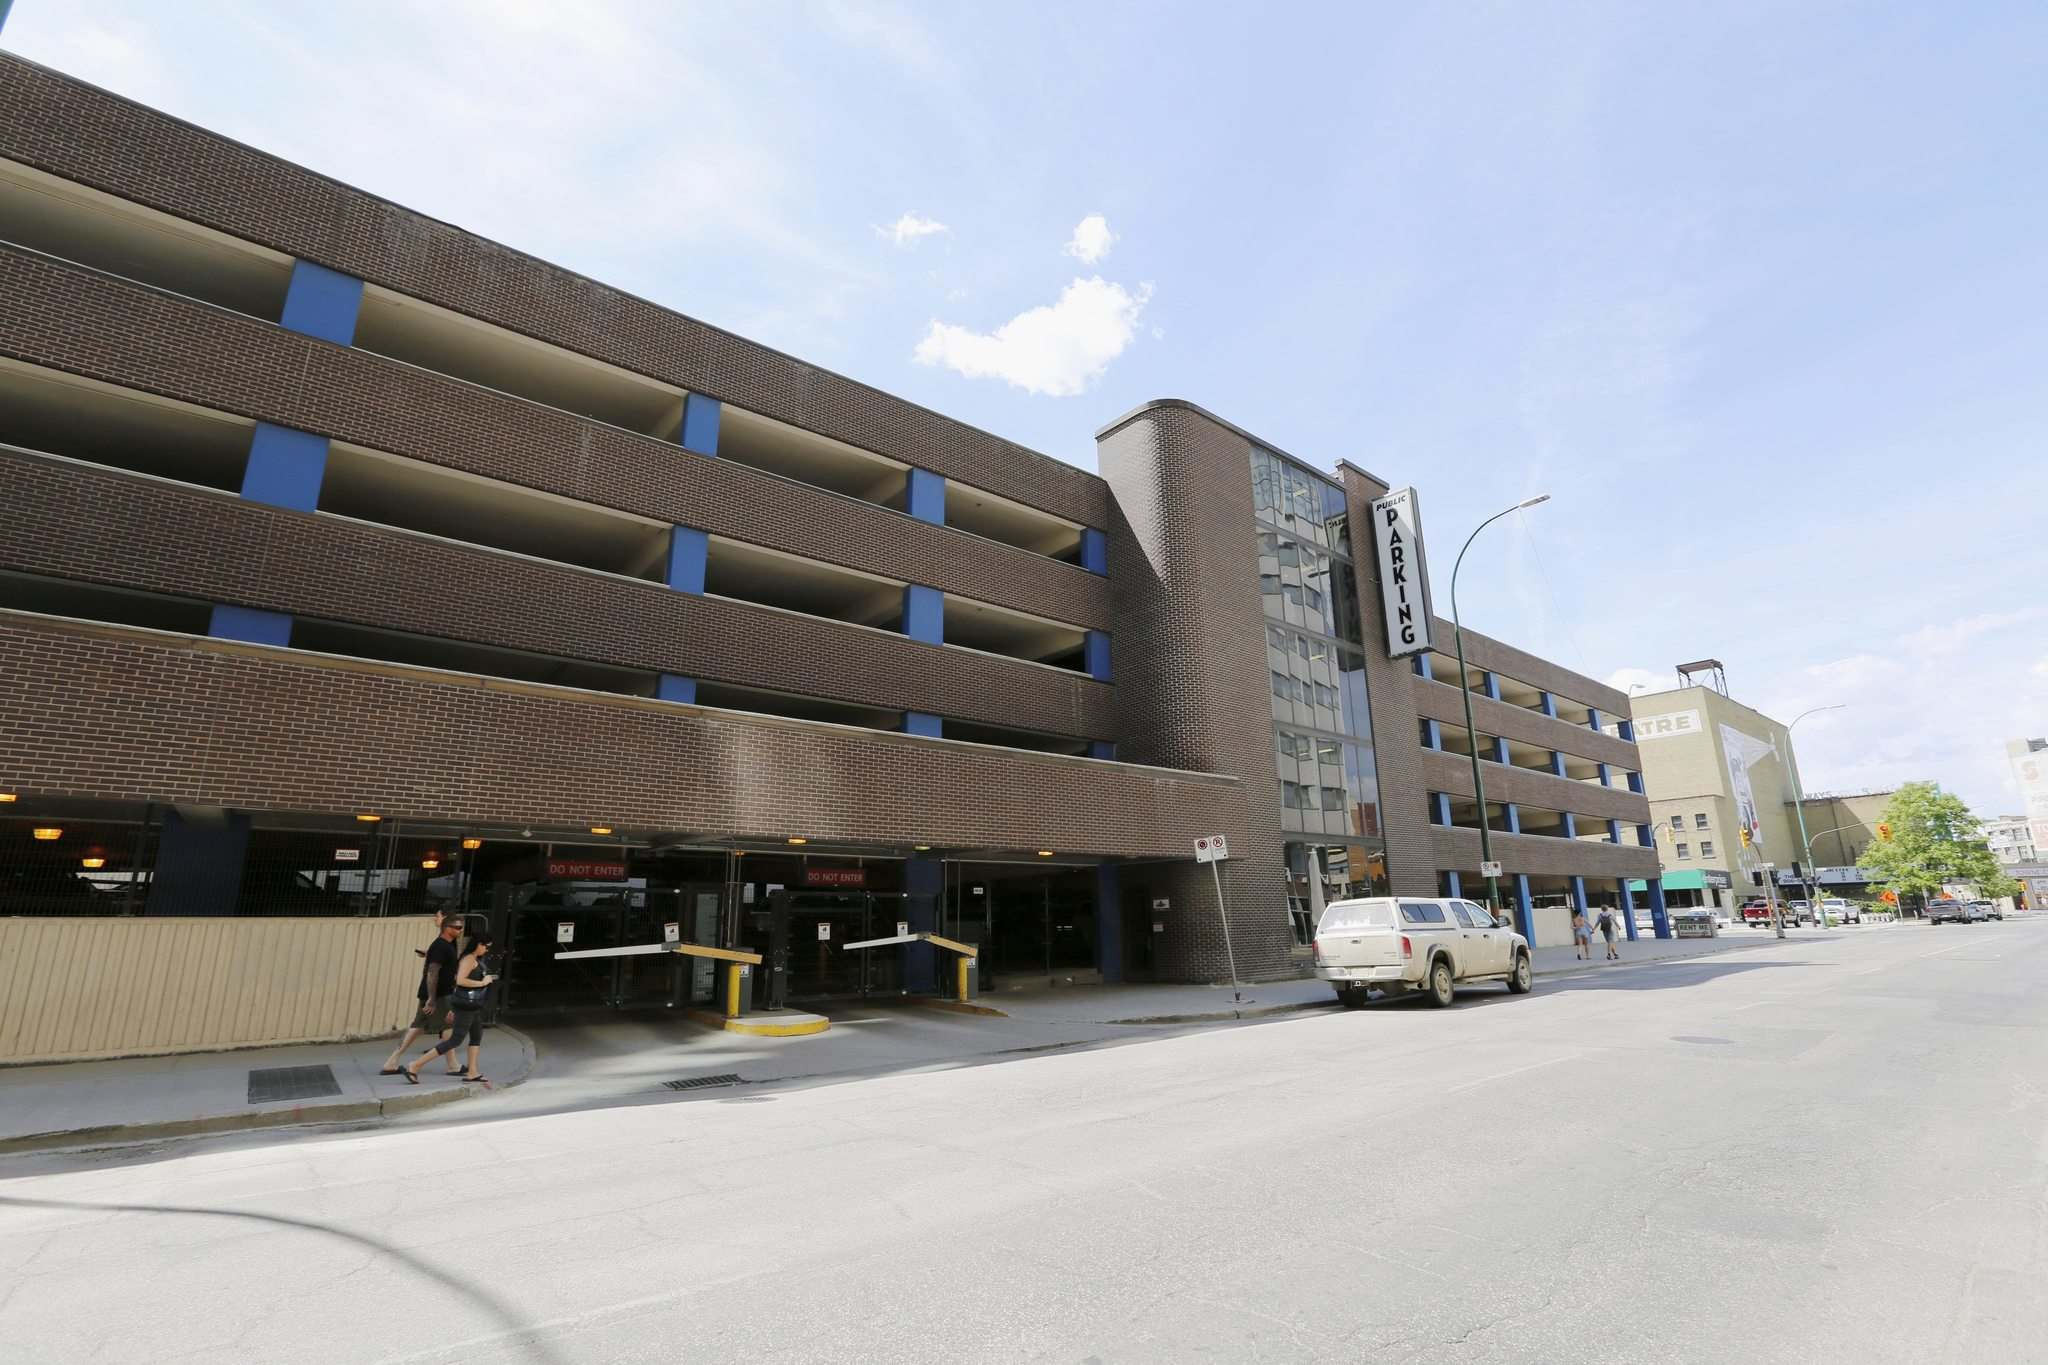 JUSTIN SAMANSKI-LANGILLE / WINNIPEG FREE PRESS</p><p>The Smith Street Parkade is located directly across from the Marlborough Hotel.</p></p>